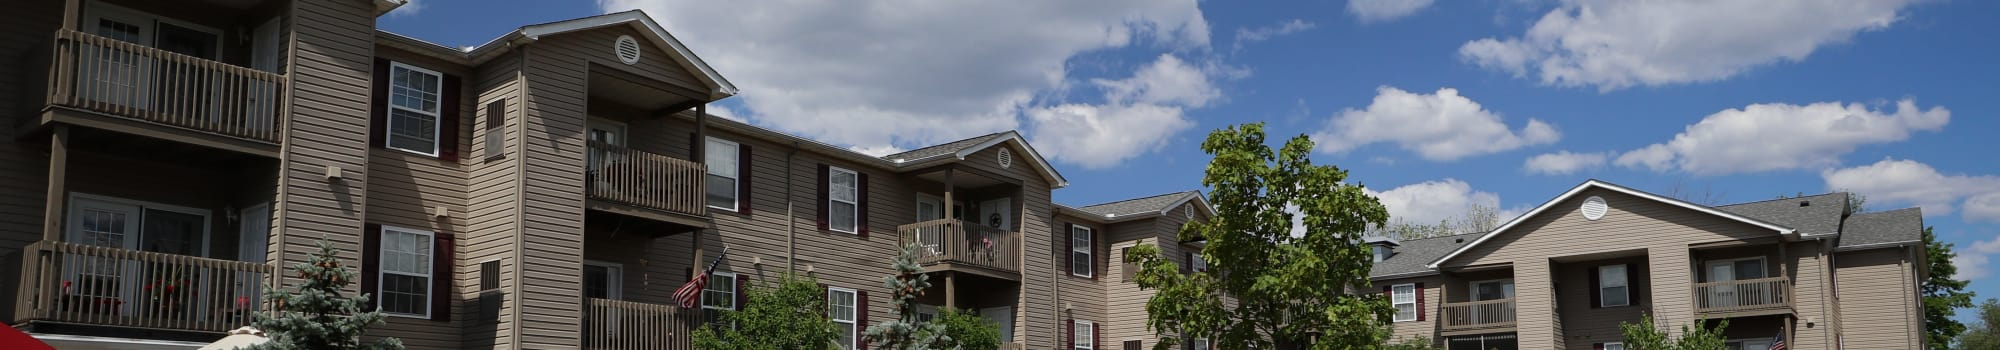 Photos of apartments in Getzville, NY